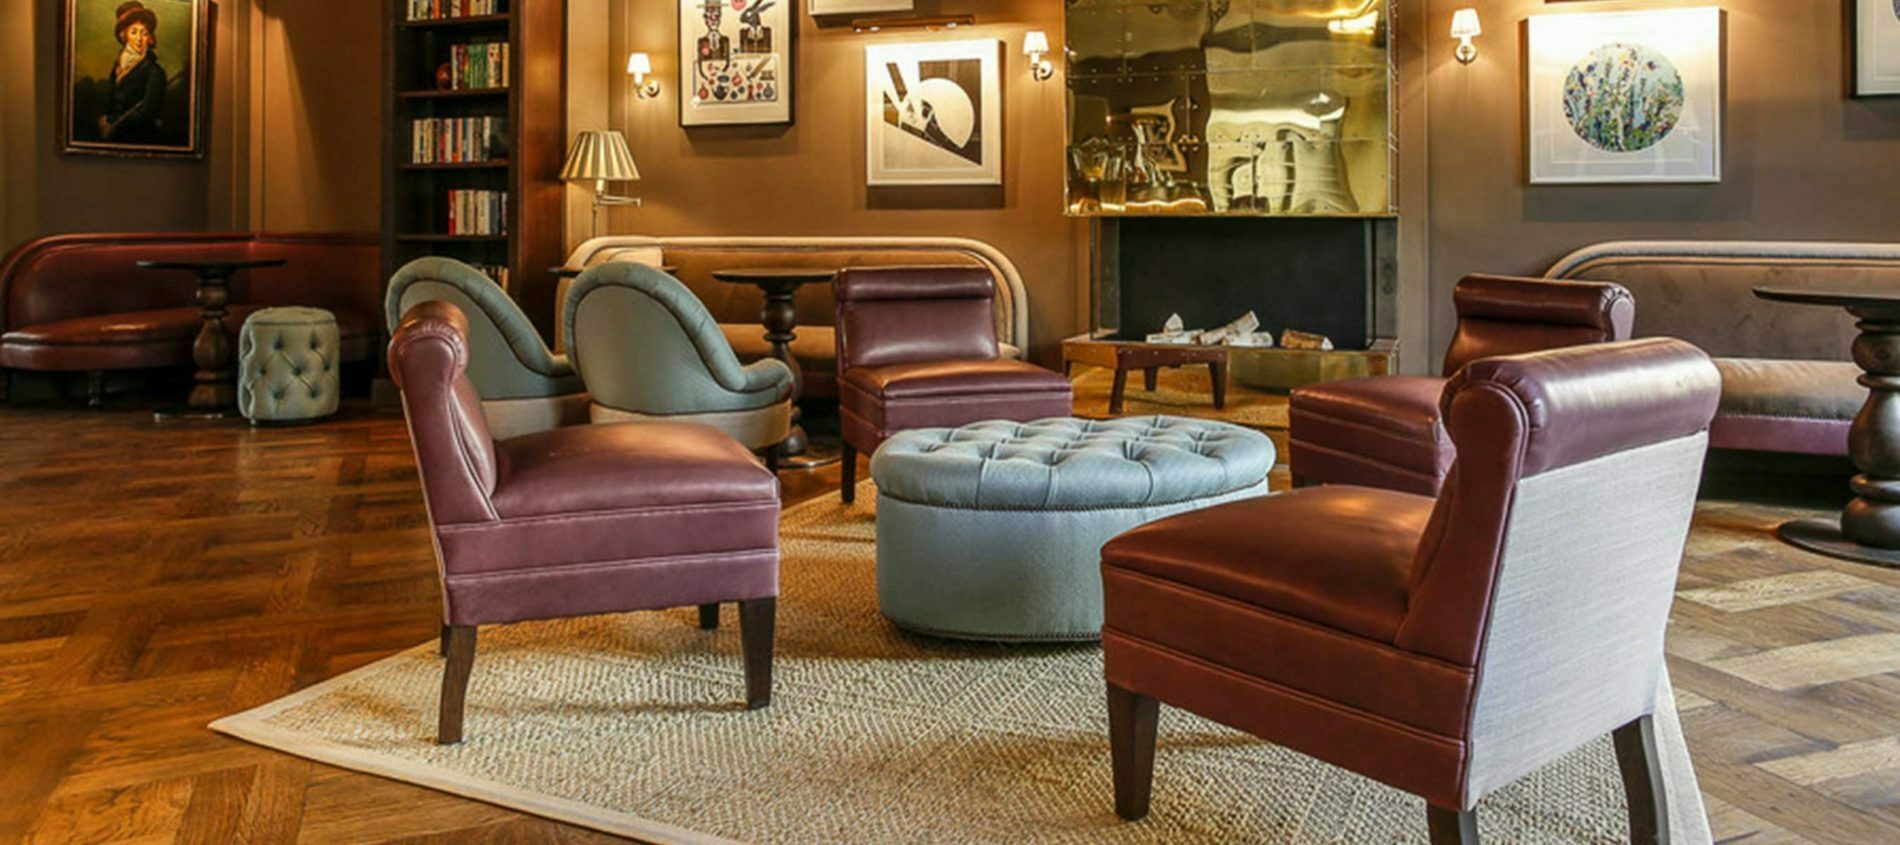 Mondian Hotel Lobby with purple leather chairs around light blue buttoned pouffe